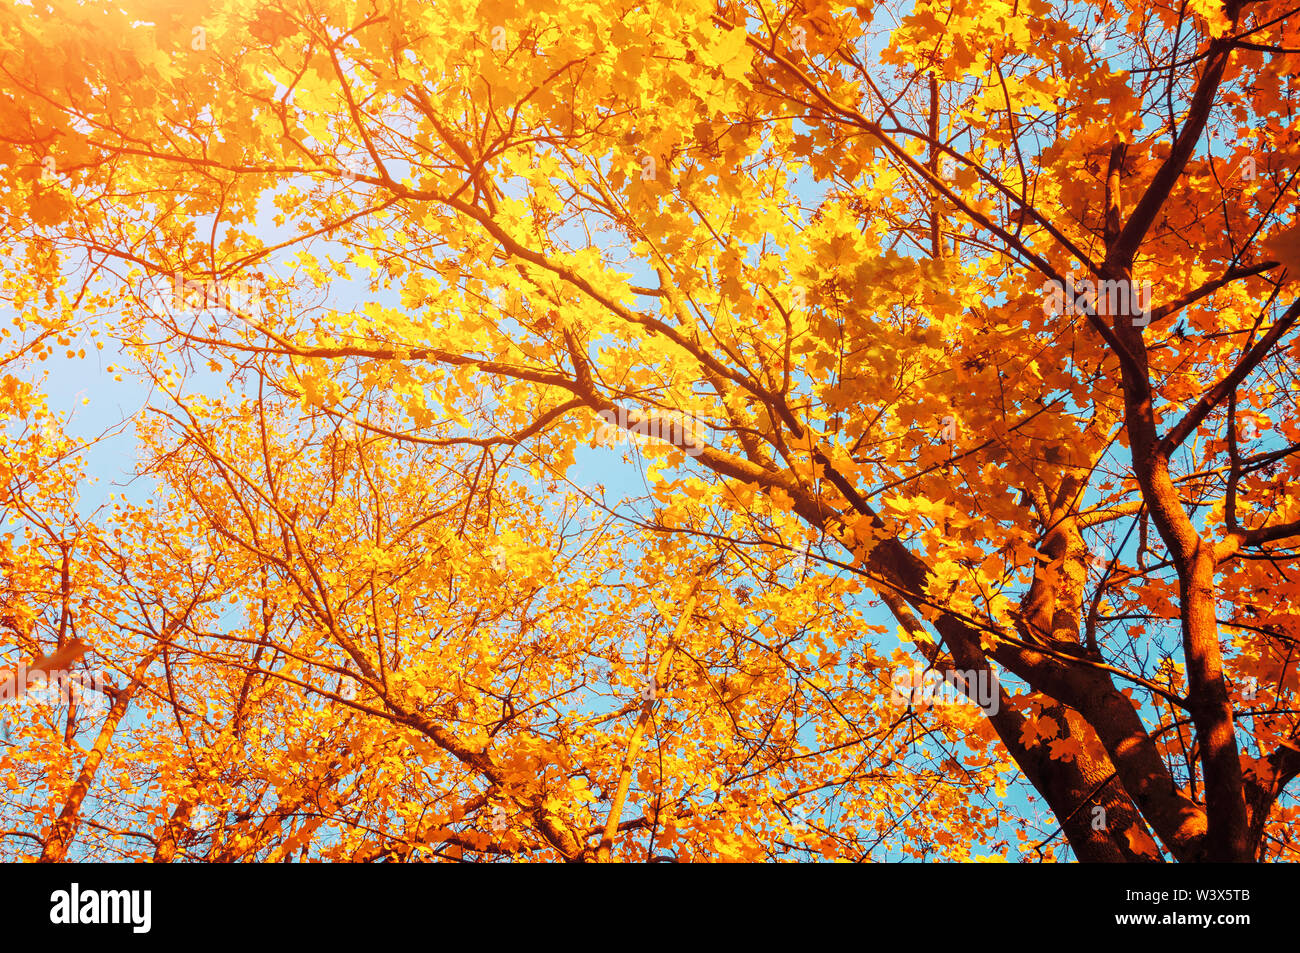 Autumn trees - orange autumn trees tops against blue sky. Autumn nature view of autumn trees in sunny day - Stock Image